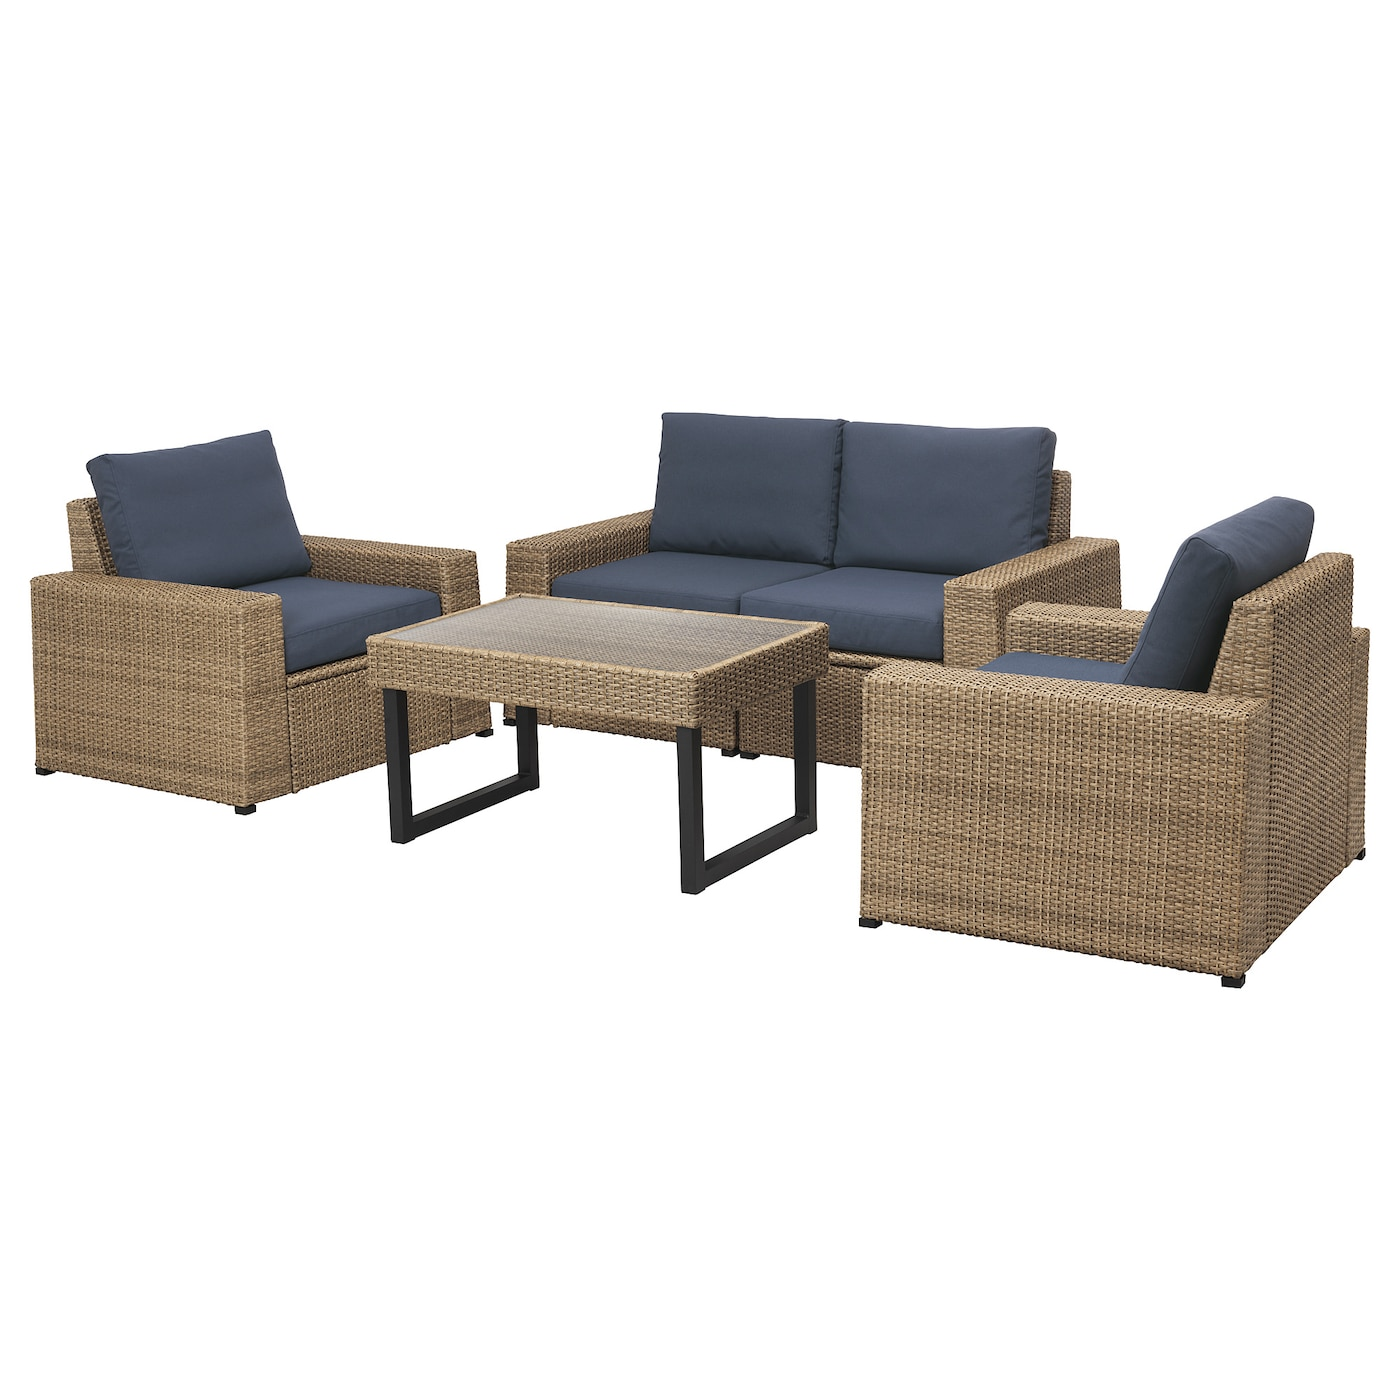 Outdoor & Garden Sofas